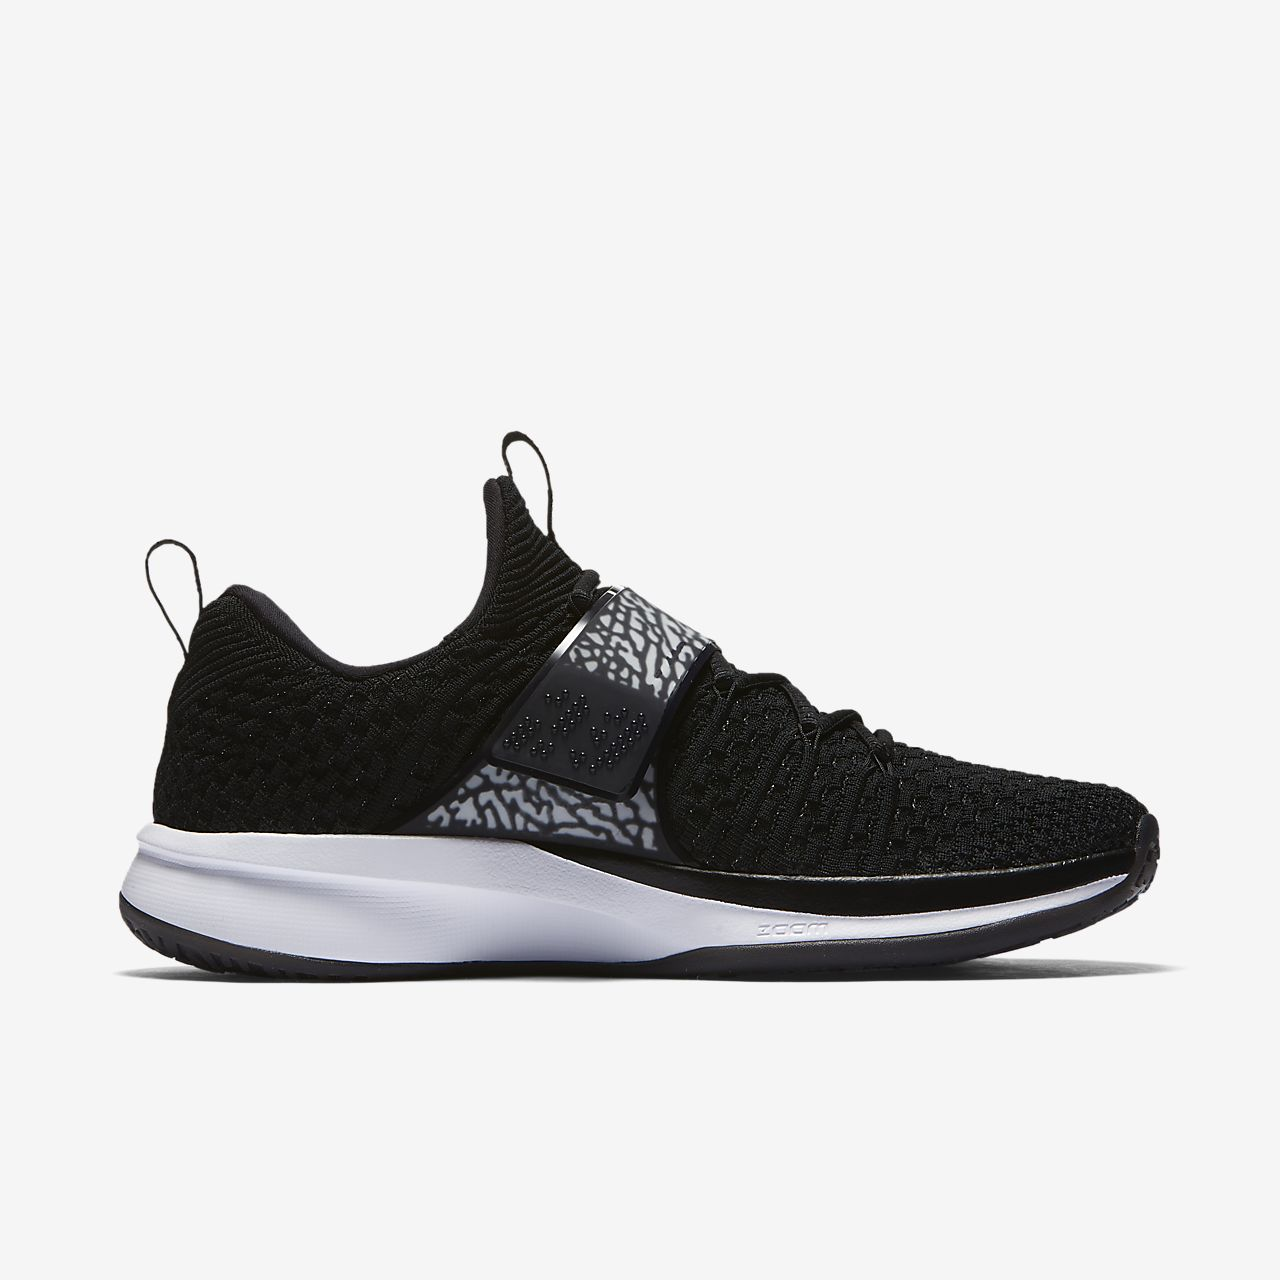 ... Air Jordan Trainer 2 Flyknit Men's Training Shoe